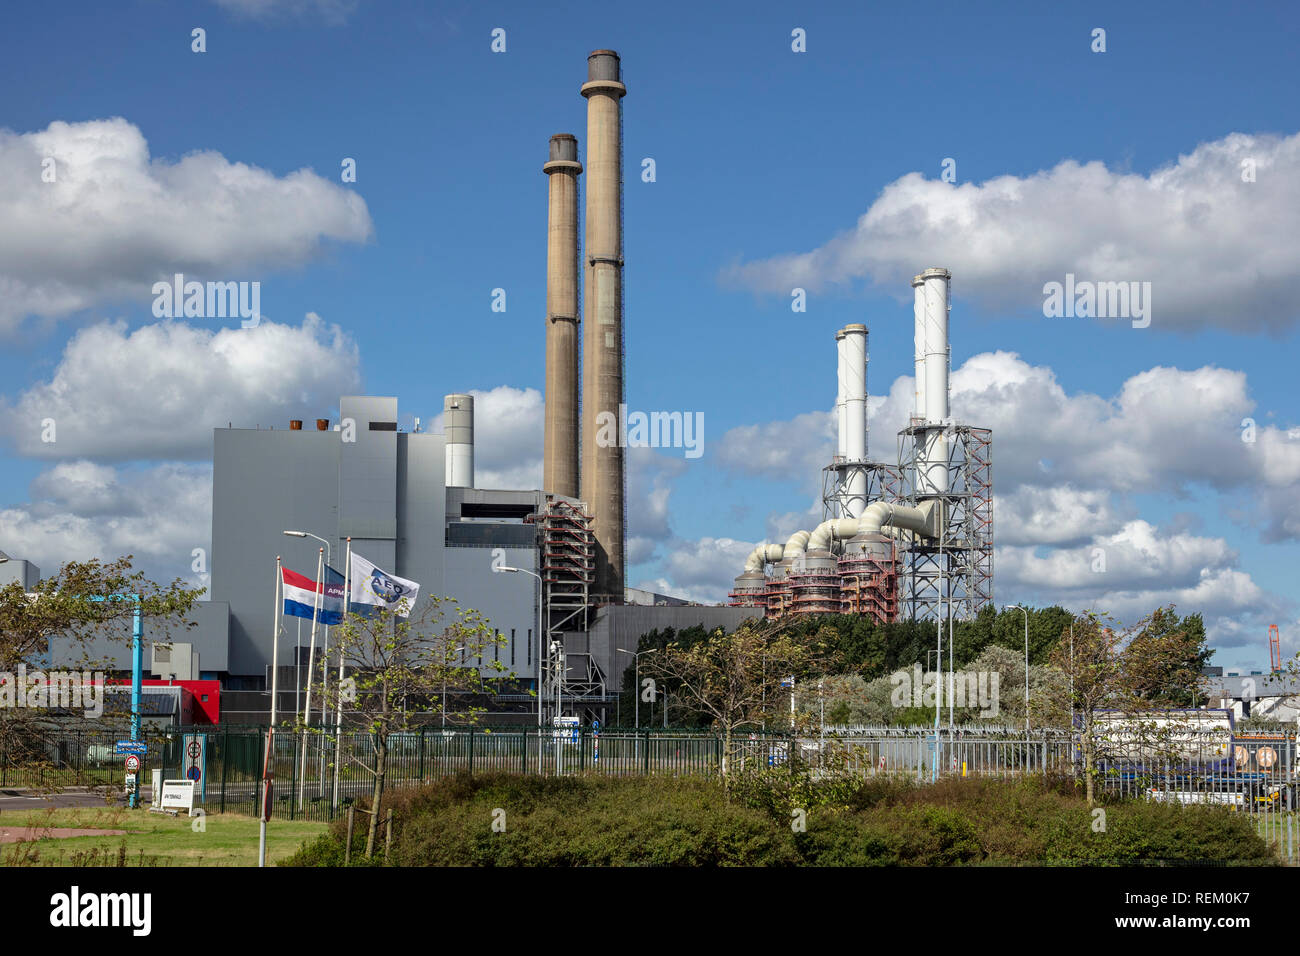 The Netherlands, Rotterdam, Port of Rotterdam, harbour. Uniper, a global energy company that generates, trades, and markets energy on a large scale - Stock Image